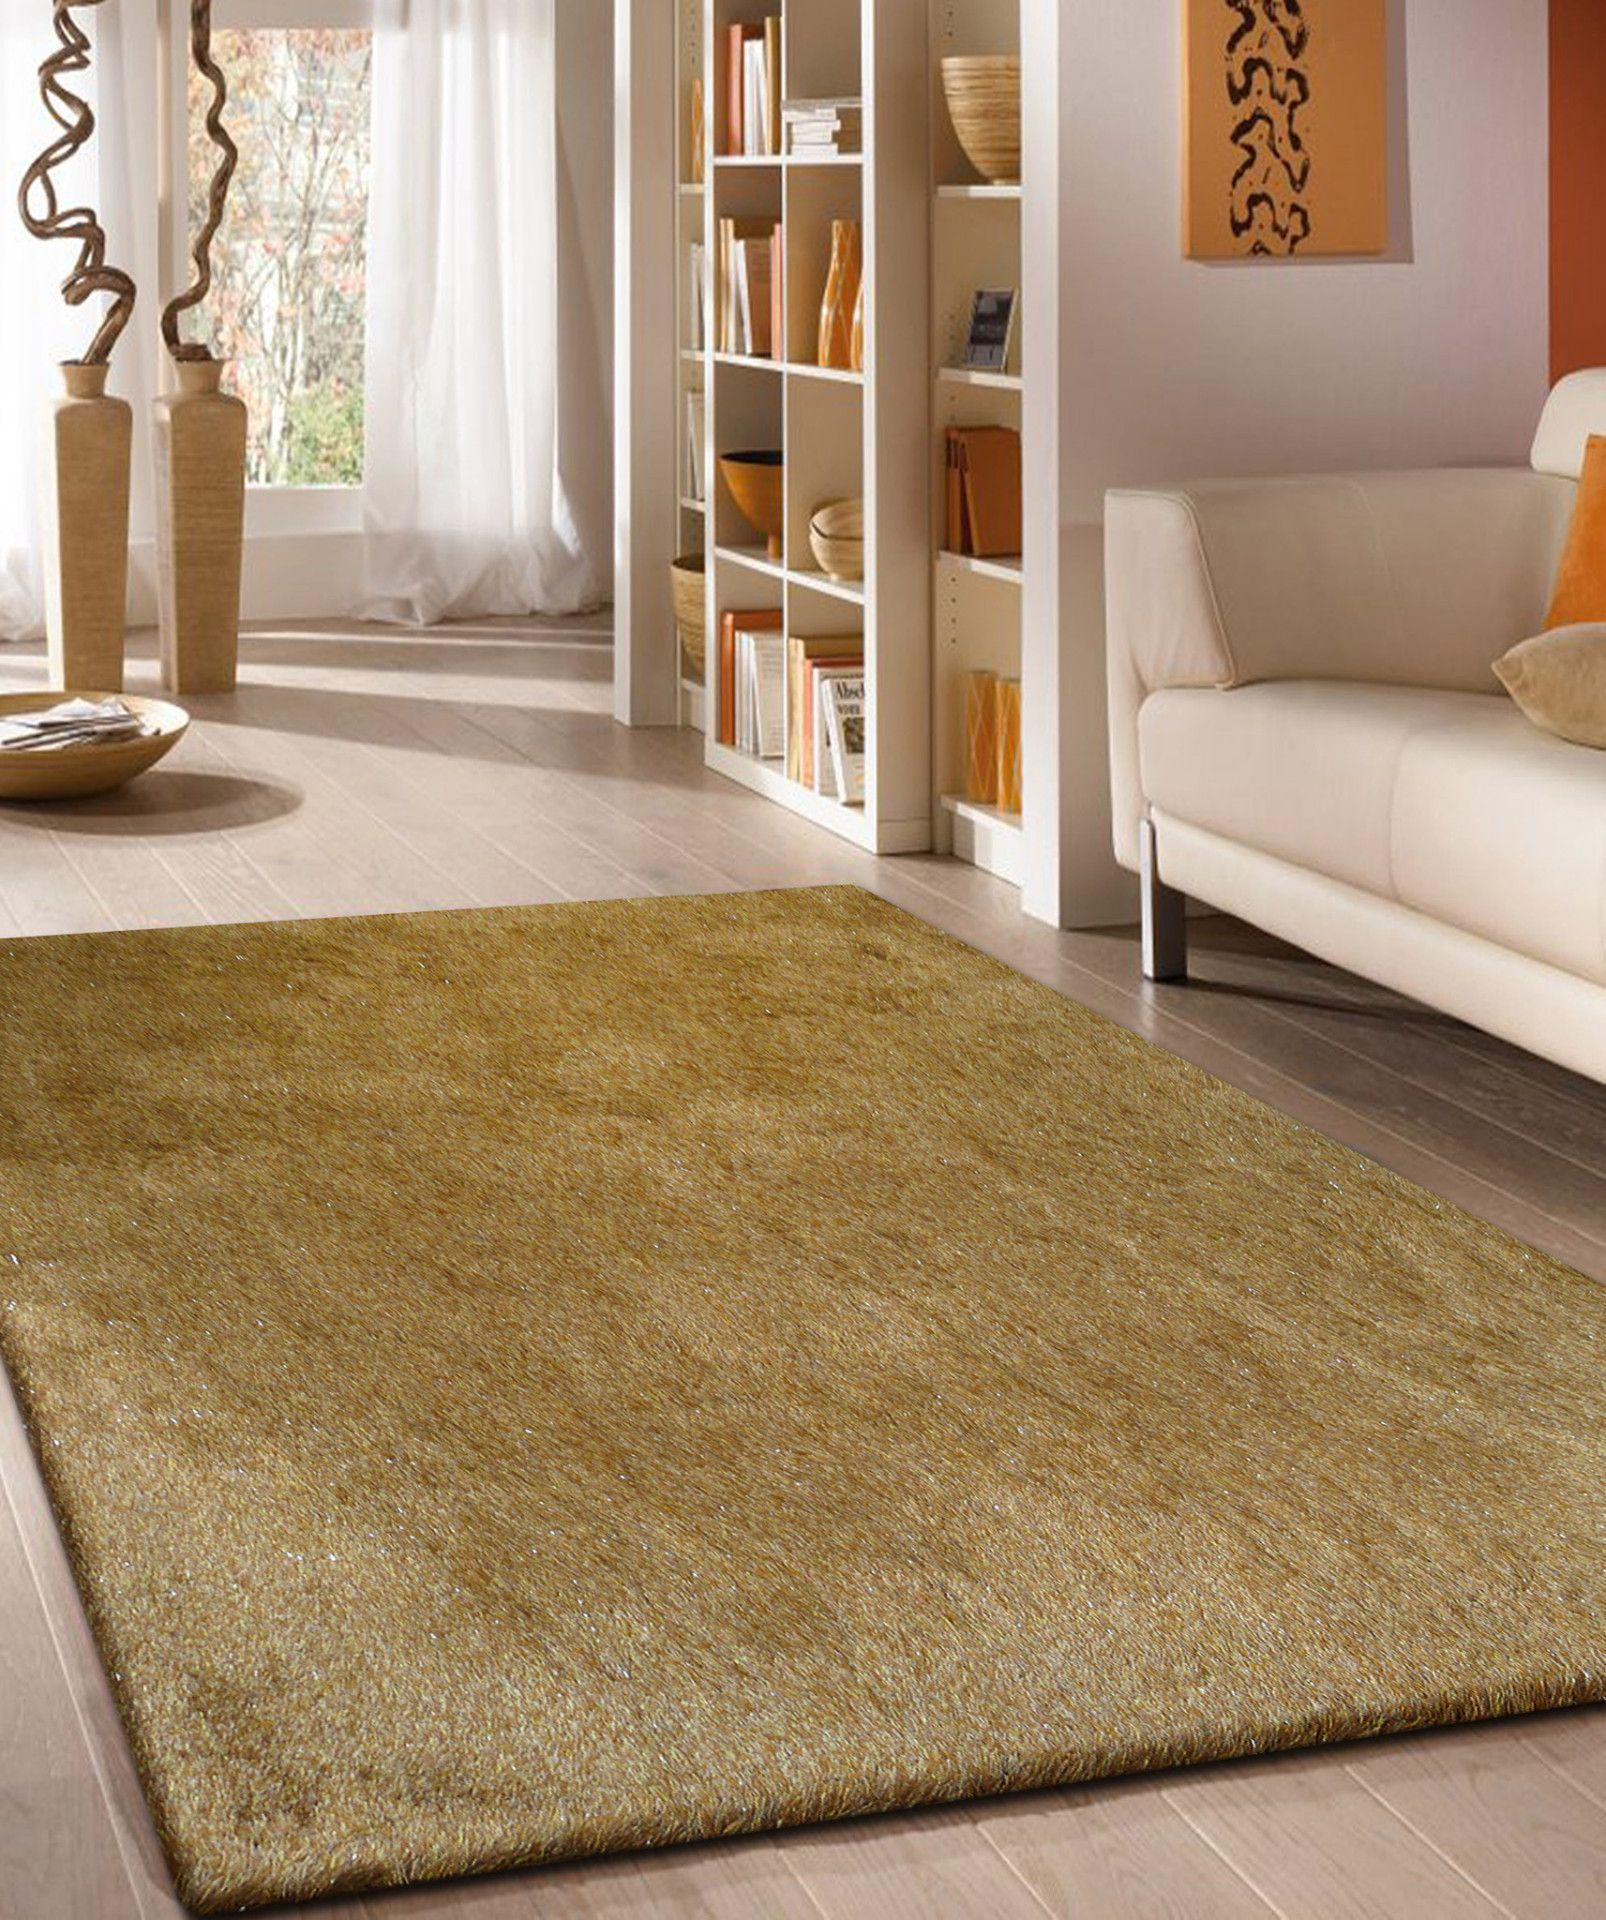 2-Tone Gold Long Soft Durable Shag Area Rug In 2019